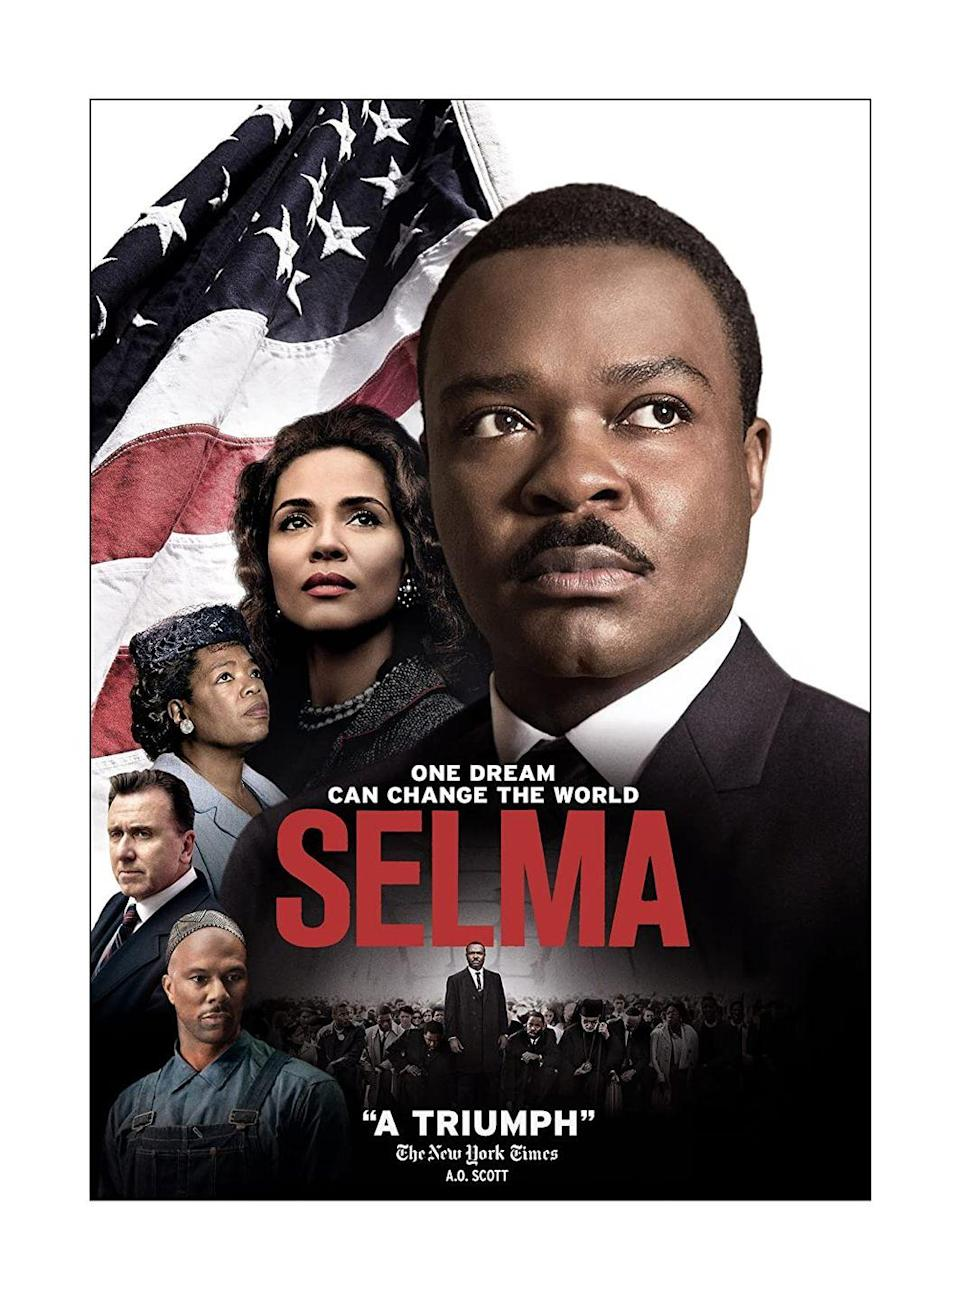 """<p><a class=""""link rapid-noclick-resp"""" href=""""https://www.amazon.com/Selma-David-Oyelowo/dp/B00S0X4HK8?tag=syn-yahoo-20&ascsubtag=%5Bartid%7C10063.g.35405329%5Bsrc%7Cyahoo-us"""" rel=""""nofollow noopener"""" target=""""_blank"""" data-ylk=""""slk:STREAM NOW"""">STREAM NOW</a></p><p>This historical drama is based on the 1965 voting rights marches from Selma to Montgomery, which were organized by civil rights movement leader James Bevel and led by civil rights activists Martin Luther King Jr., Hosea Williams, and John Lewis. </p>"""